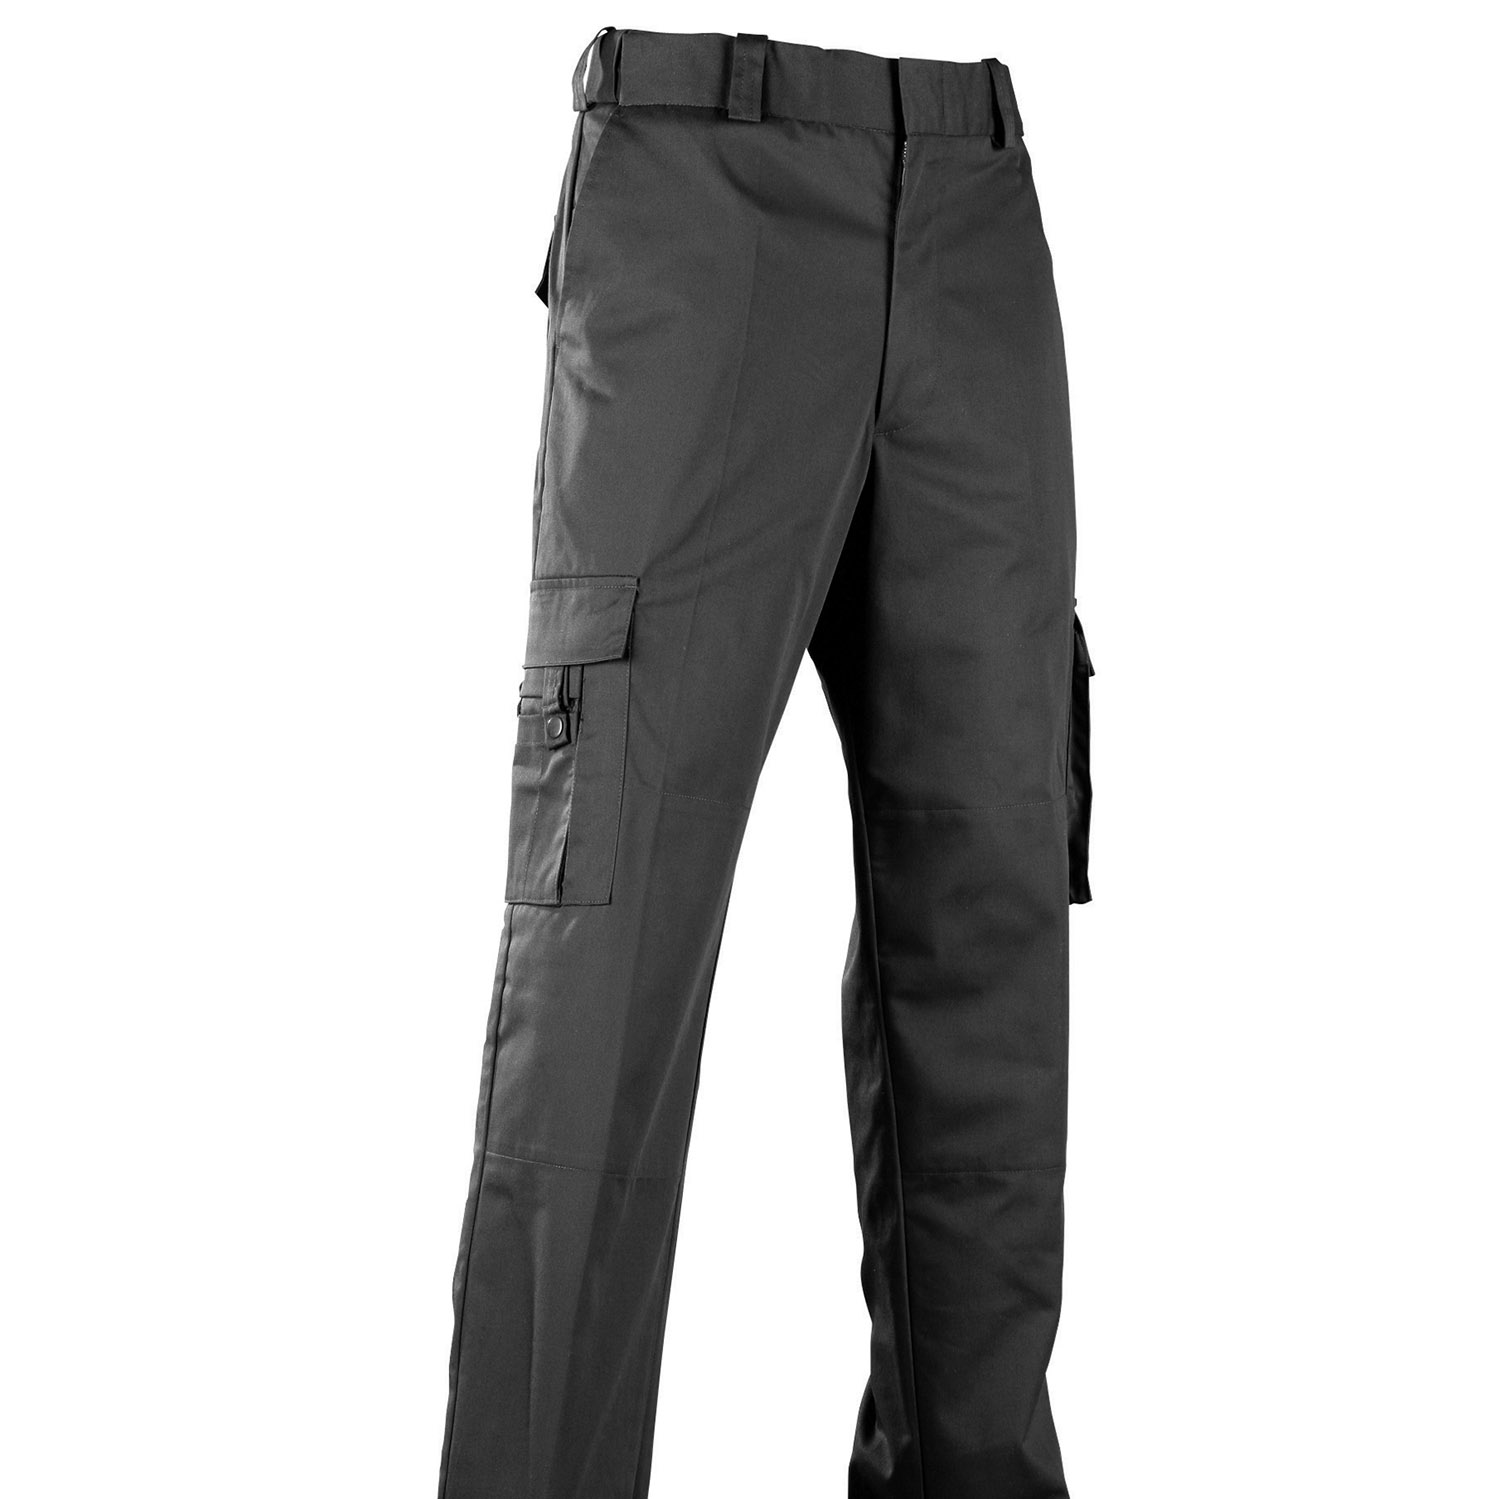 Galls Men's EMS Trousers